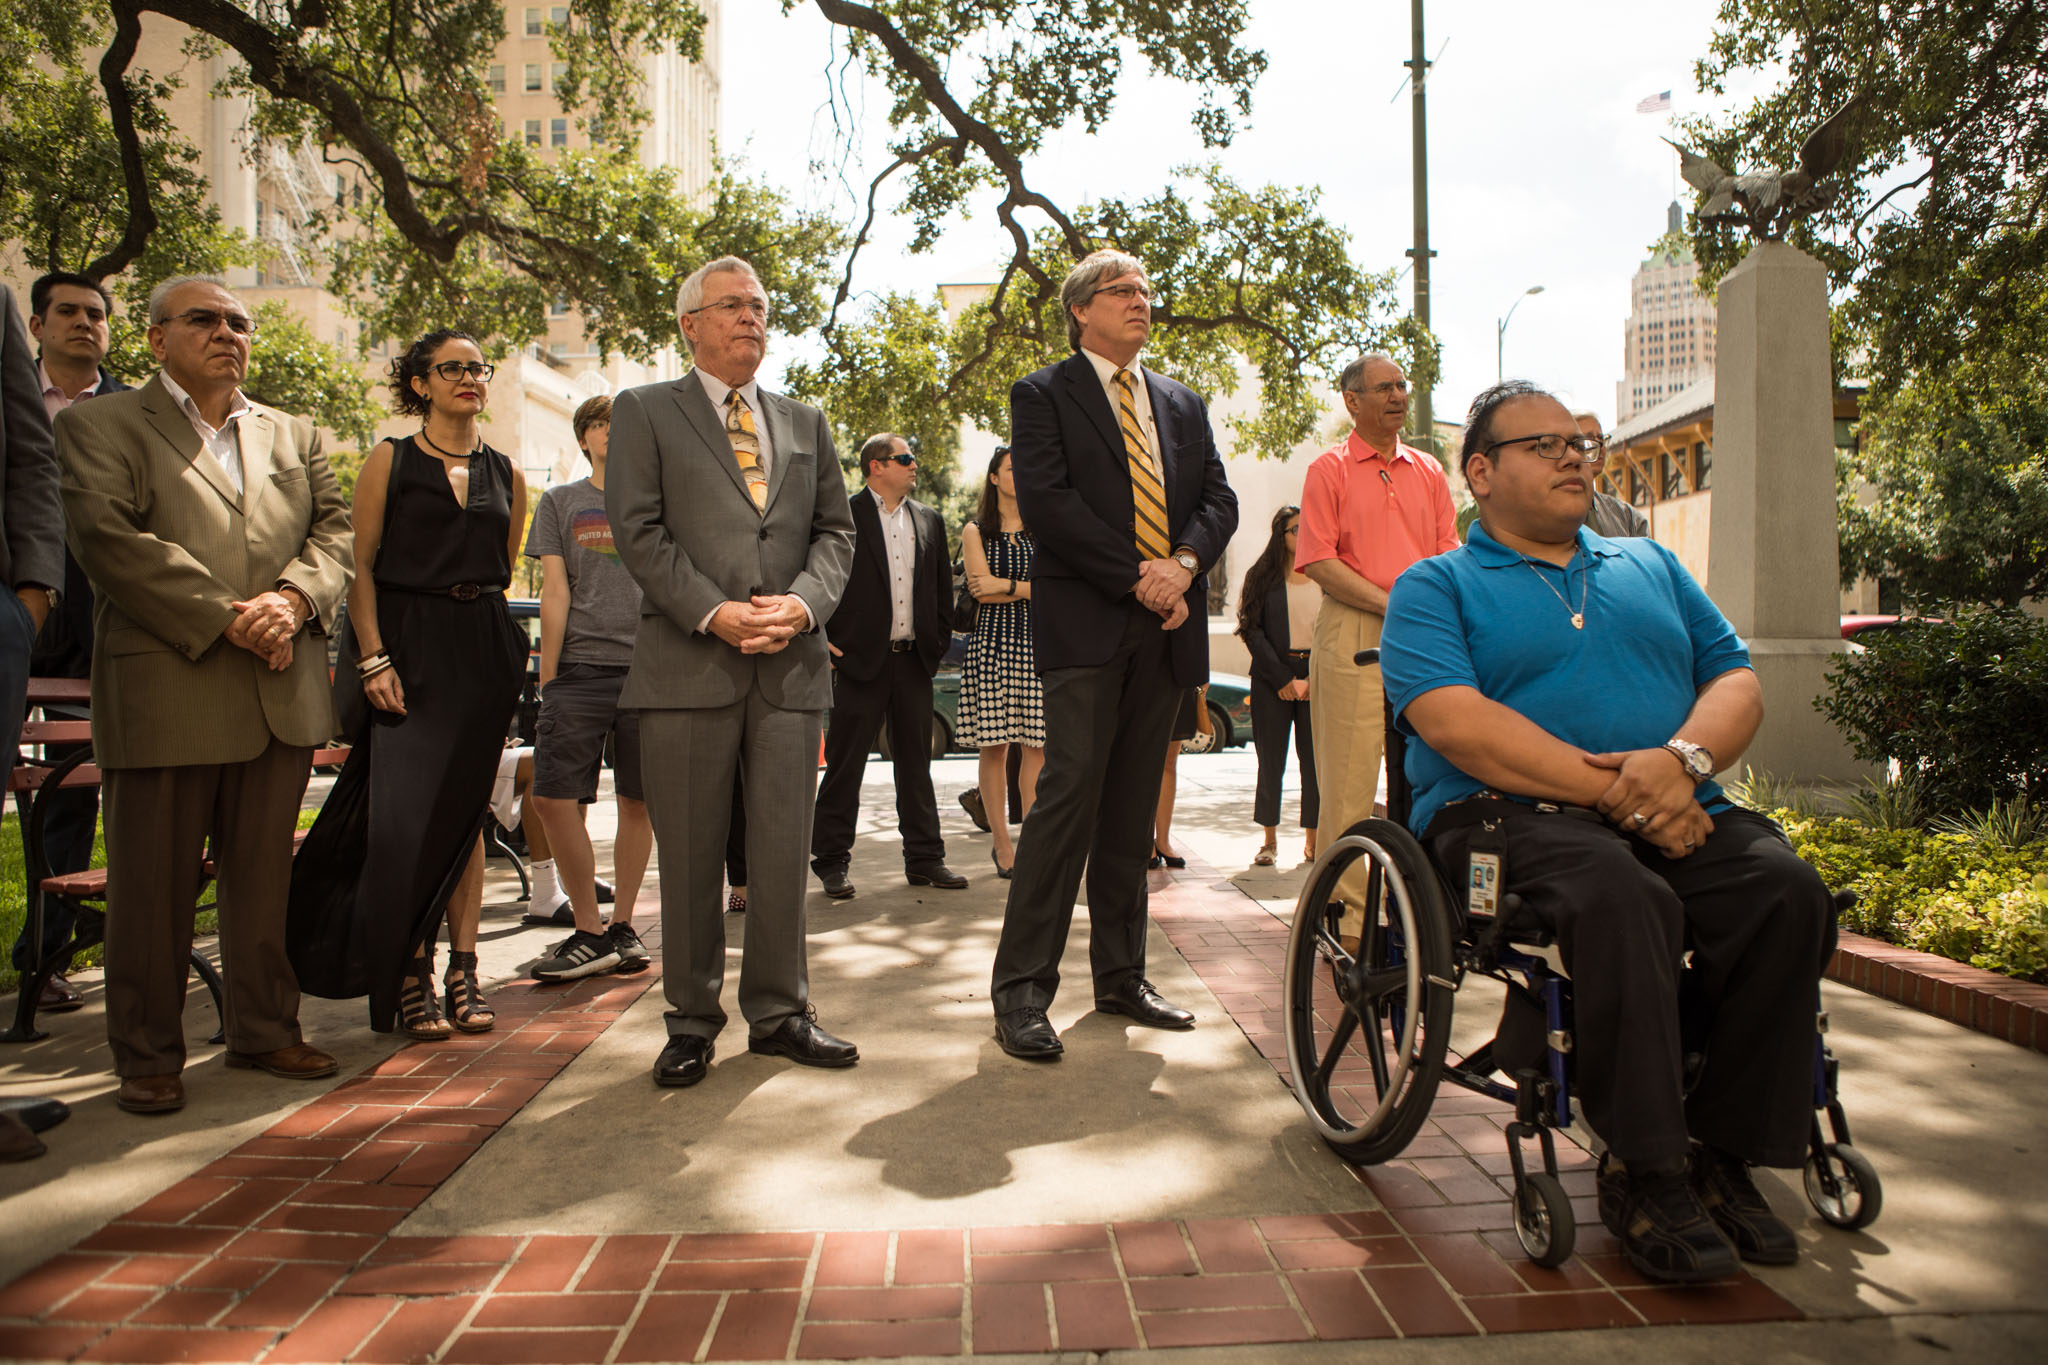 Abraham Robles (right) attends the announcement of the winner of City Hall For All Design Competition, which will provide a more accessible entry to City Hall for those who are handicapped.